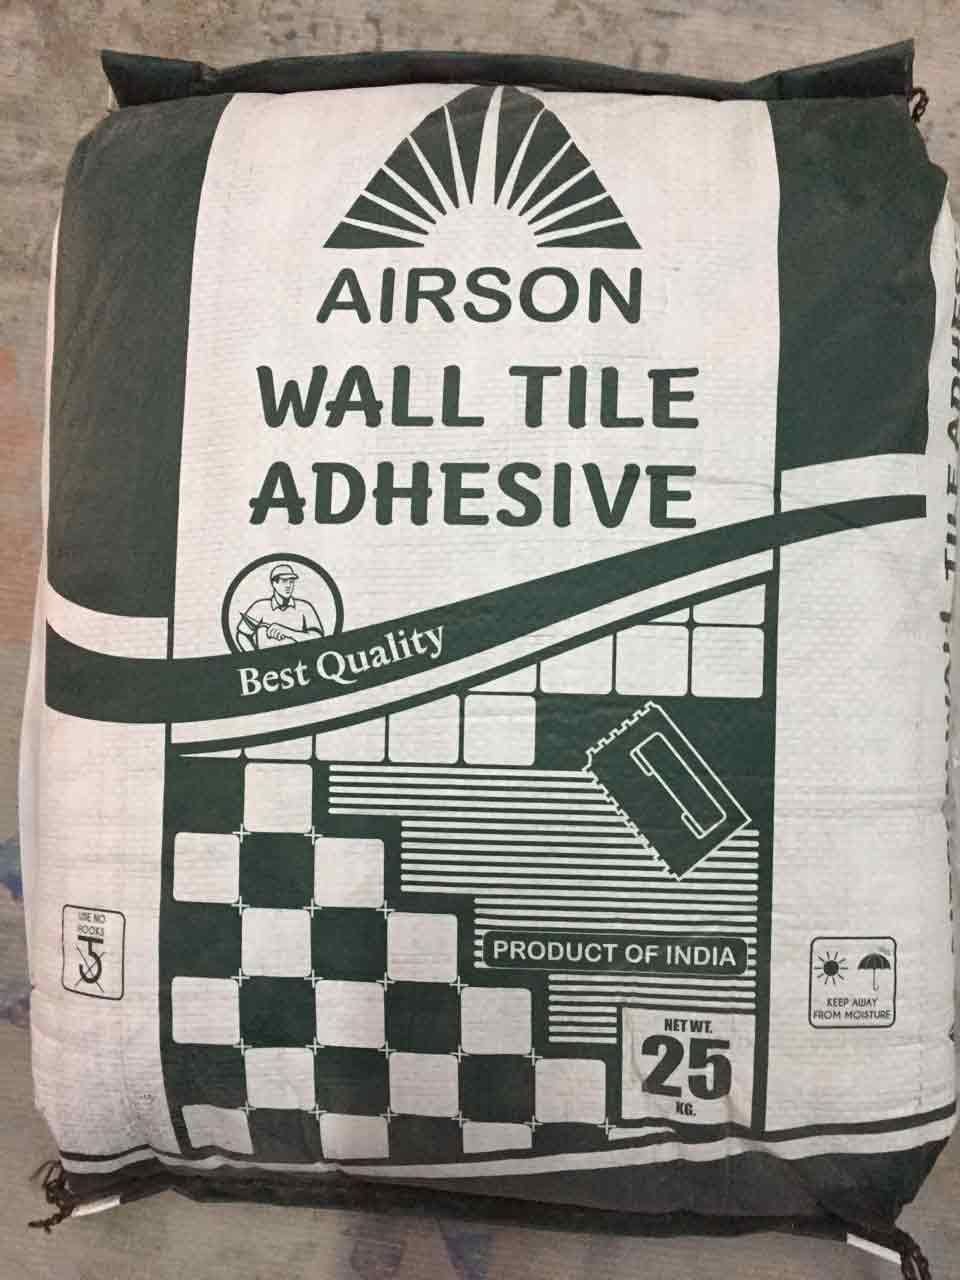 Image for Offer Distributership for Tile Adhesive in Rajkot Airson Chemical